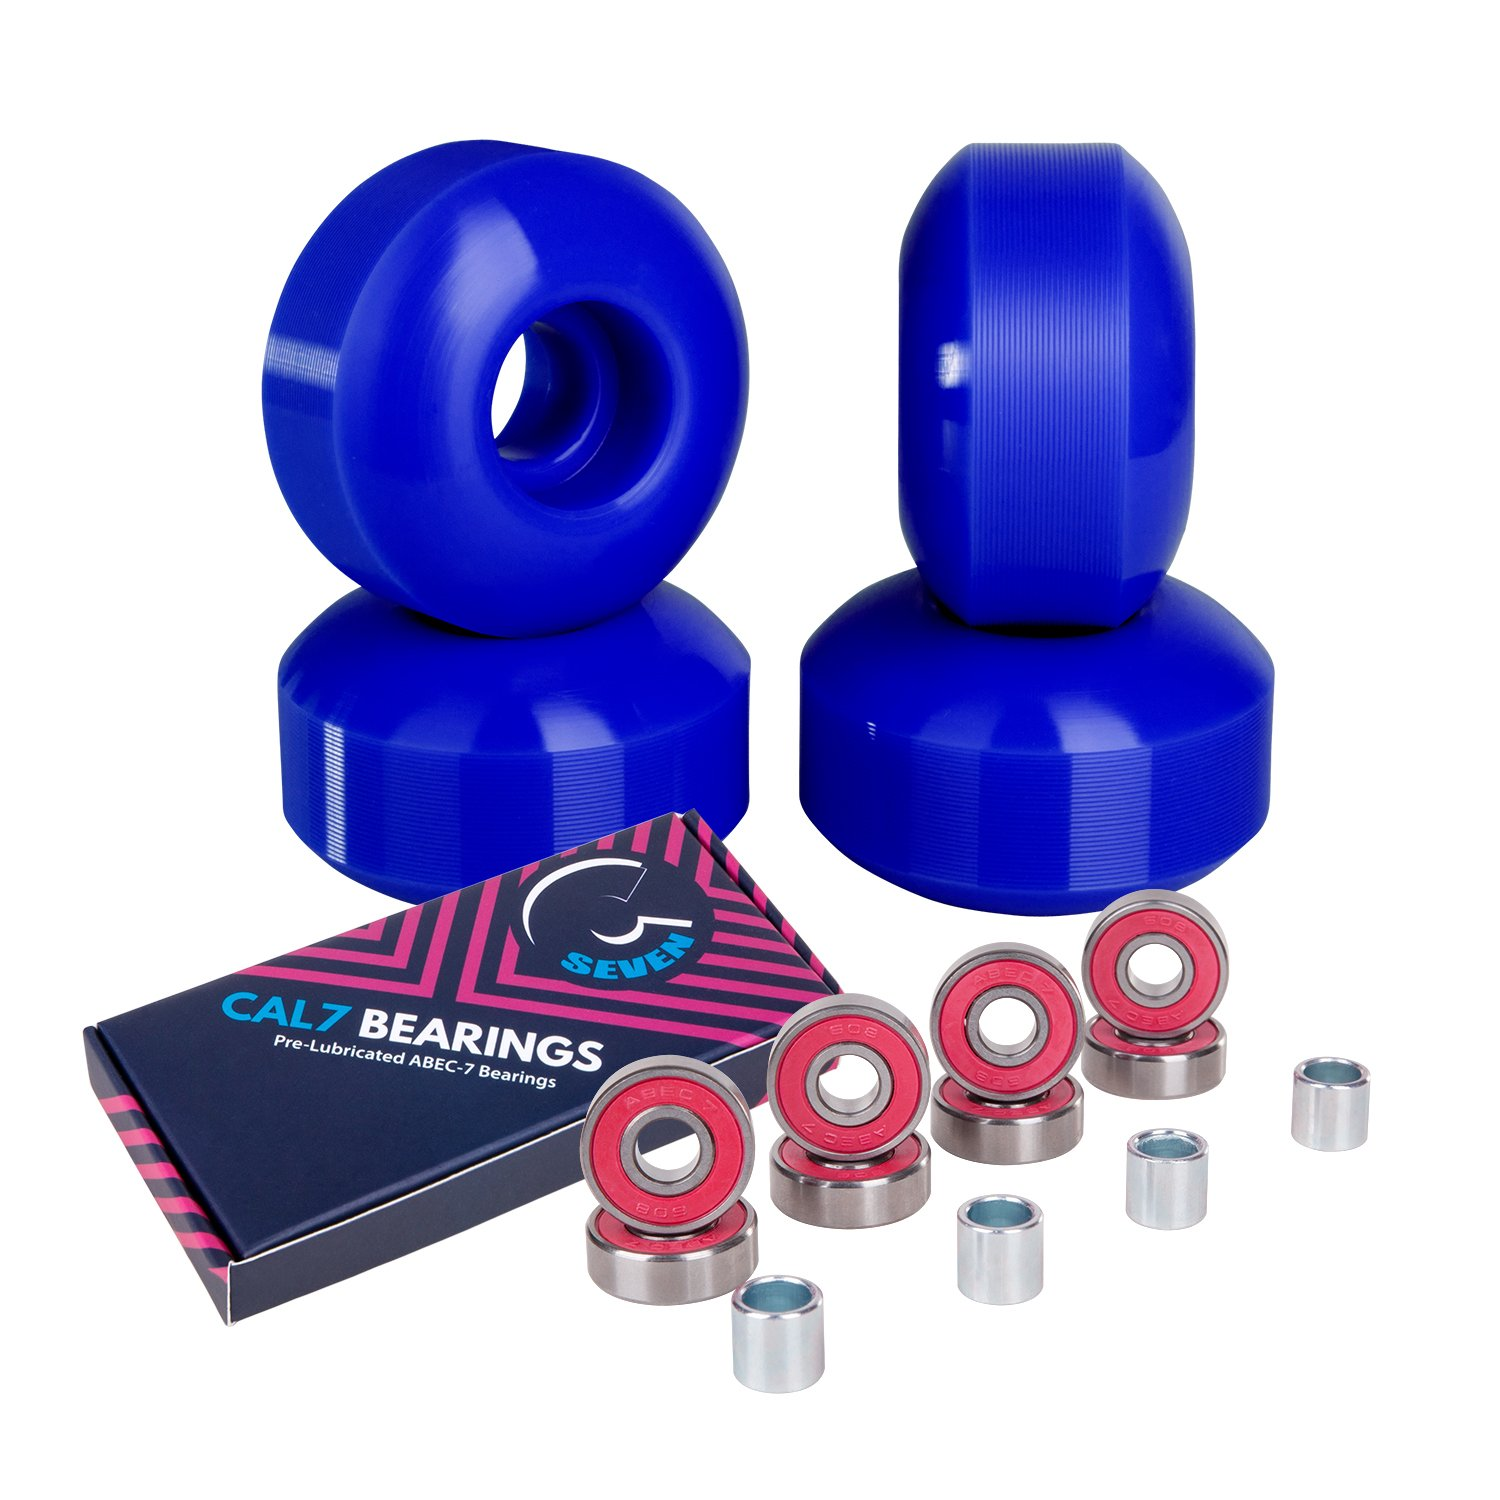 Cal 7 52mm Skateboard Wheels with Bearings (Blue) by Cal 7